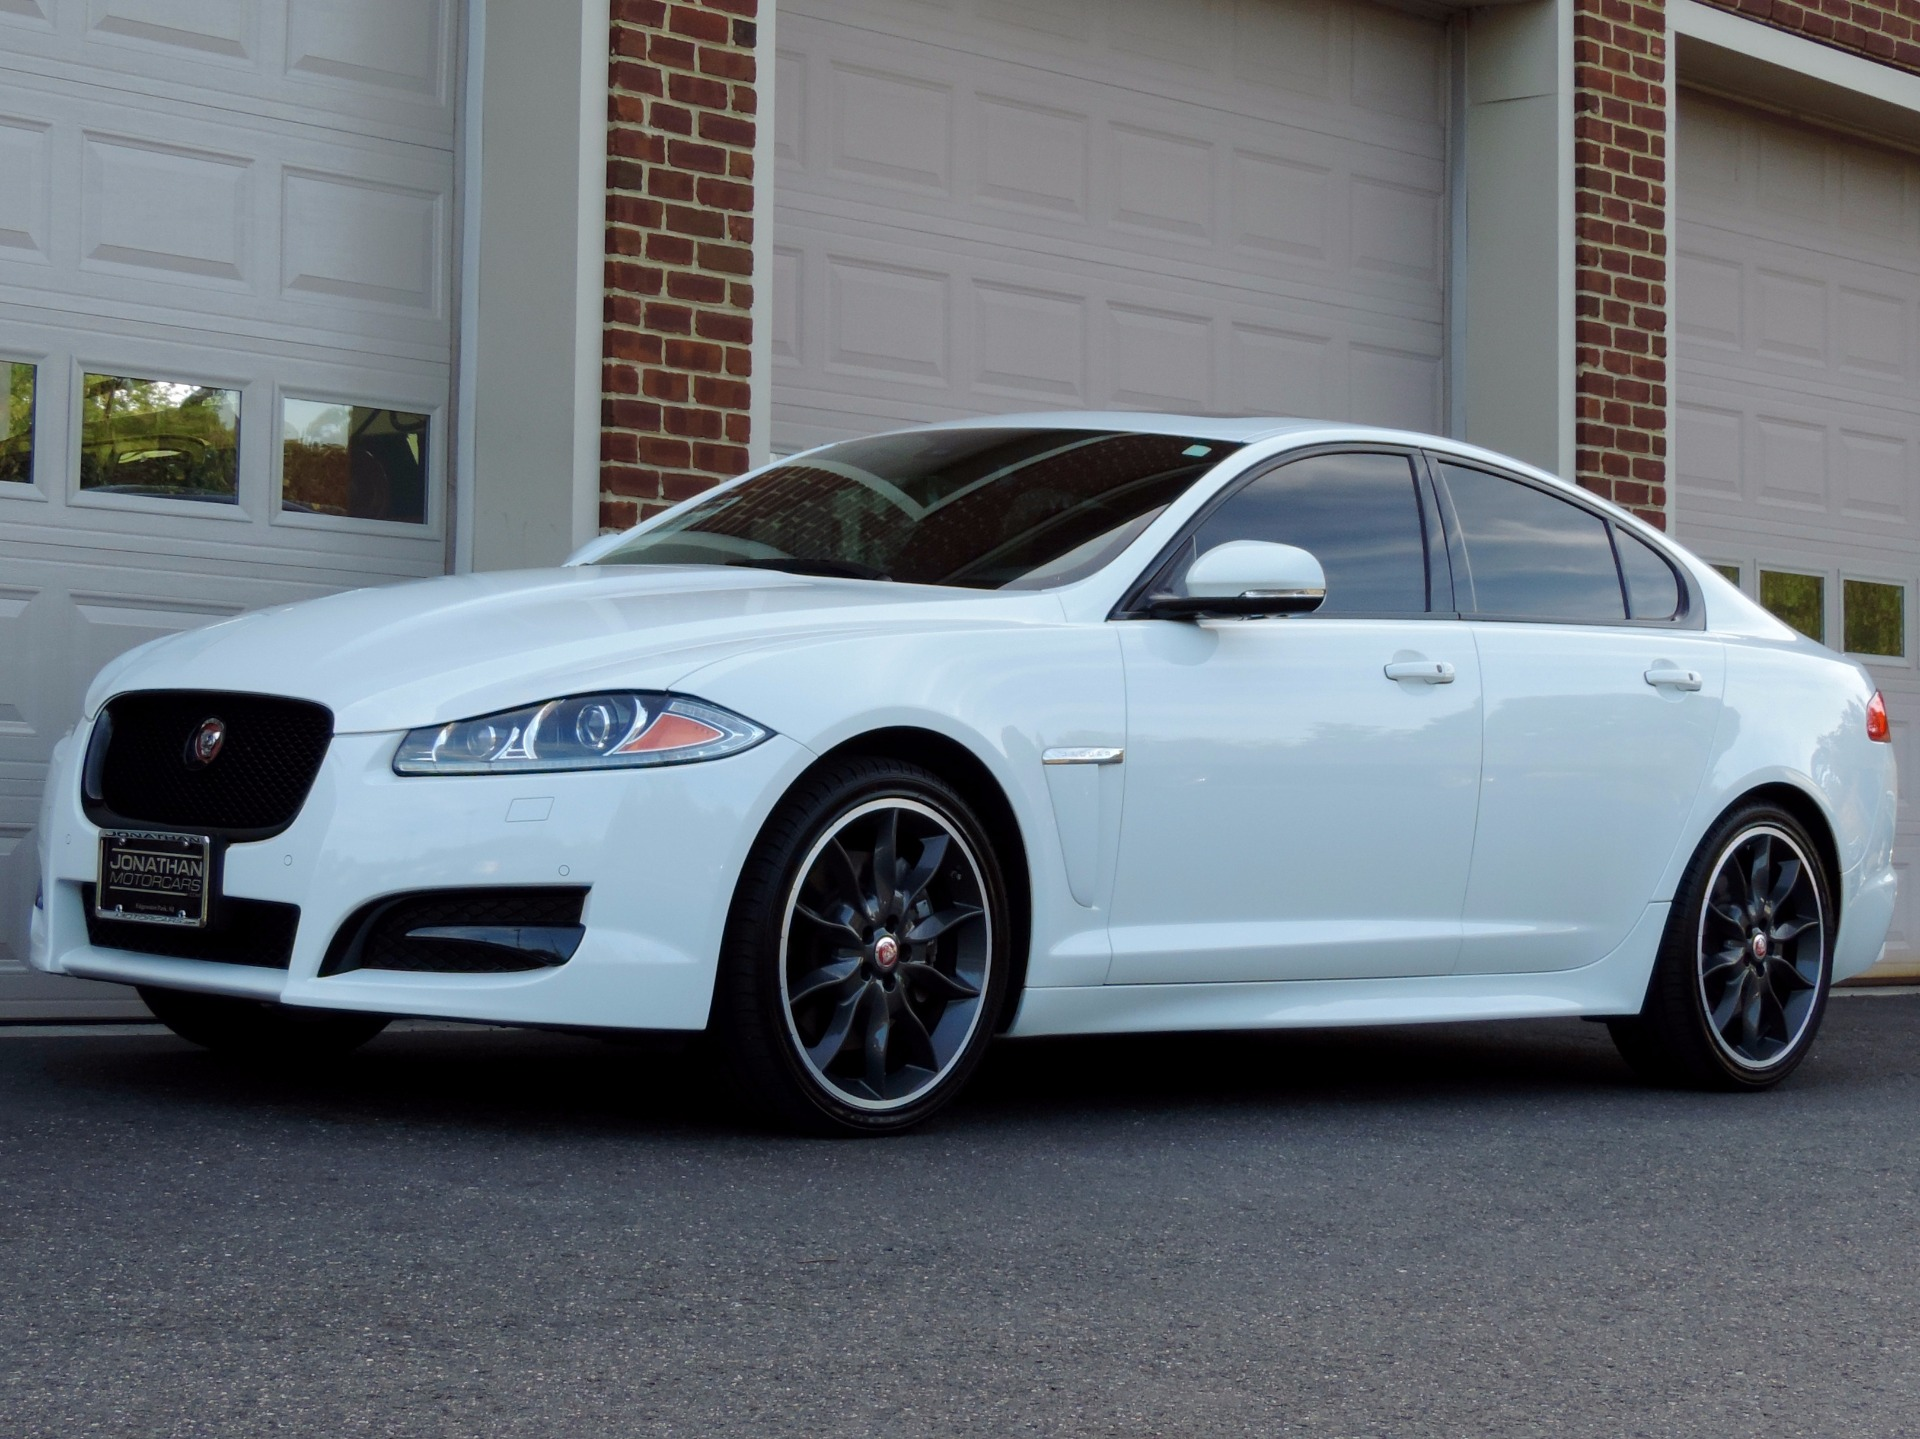 2015 jaguar xf 3 0 sport stock u87756 for sale near edgewater park nj nj jaguar dealer. Black Bedroom Furniture Sets. Home Design Ideas